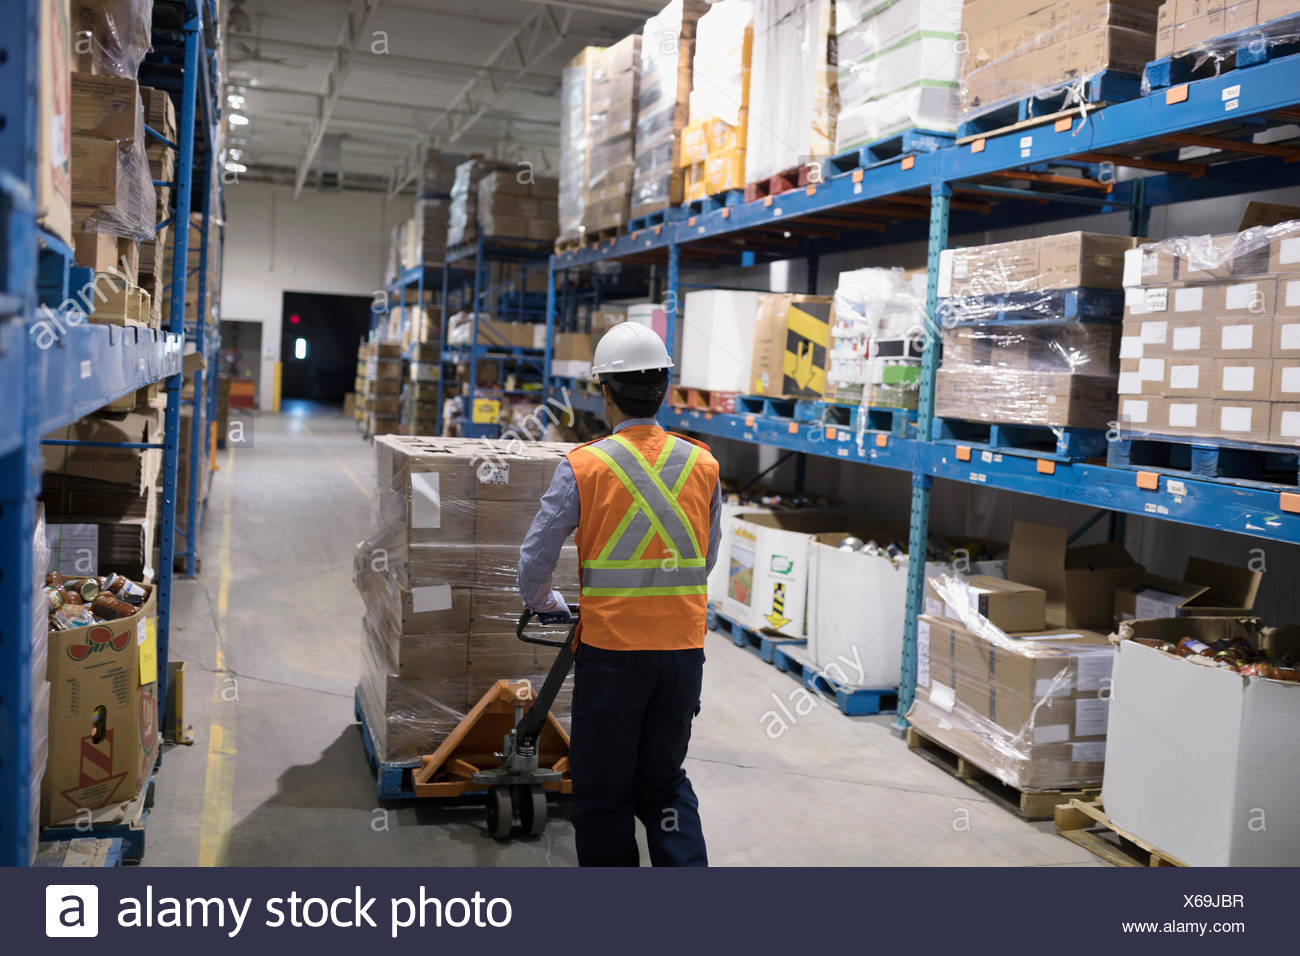 Worker pushing pallet jack with cardboard boxes in distribution warehouse - Stock Image